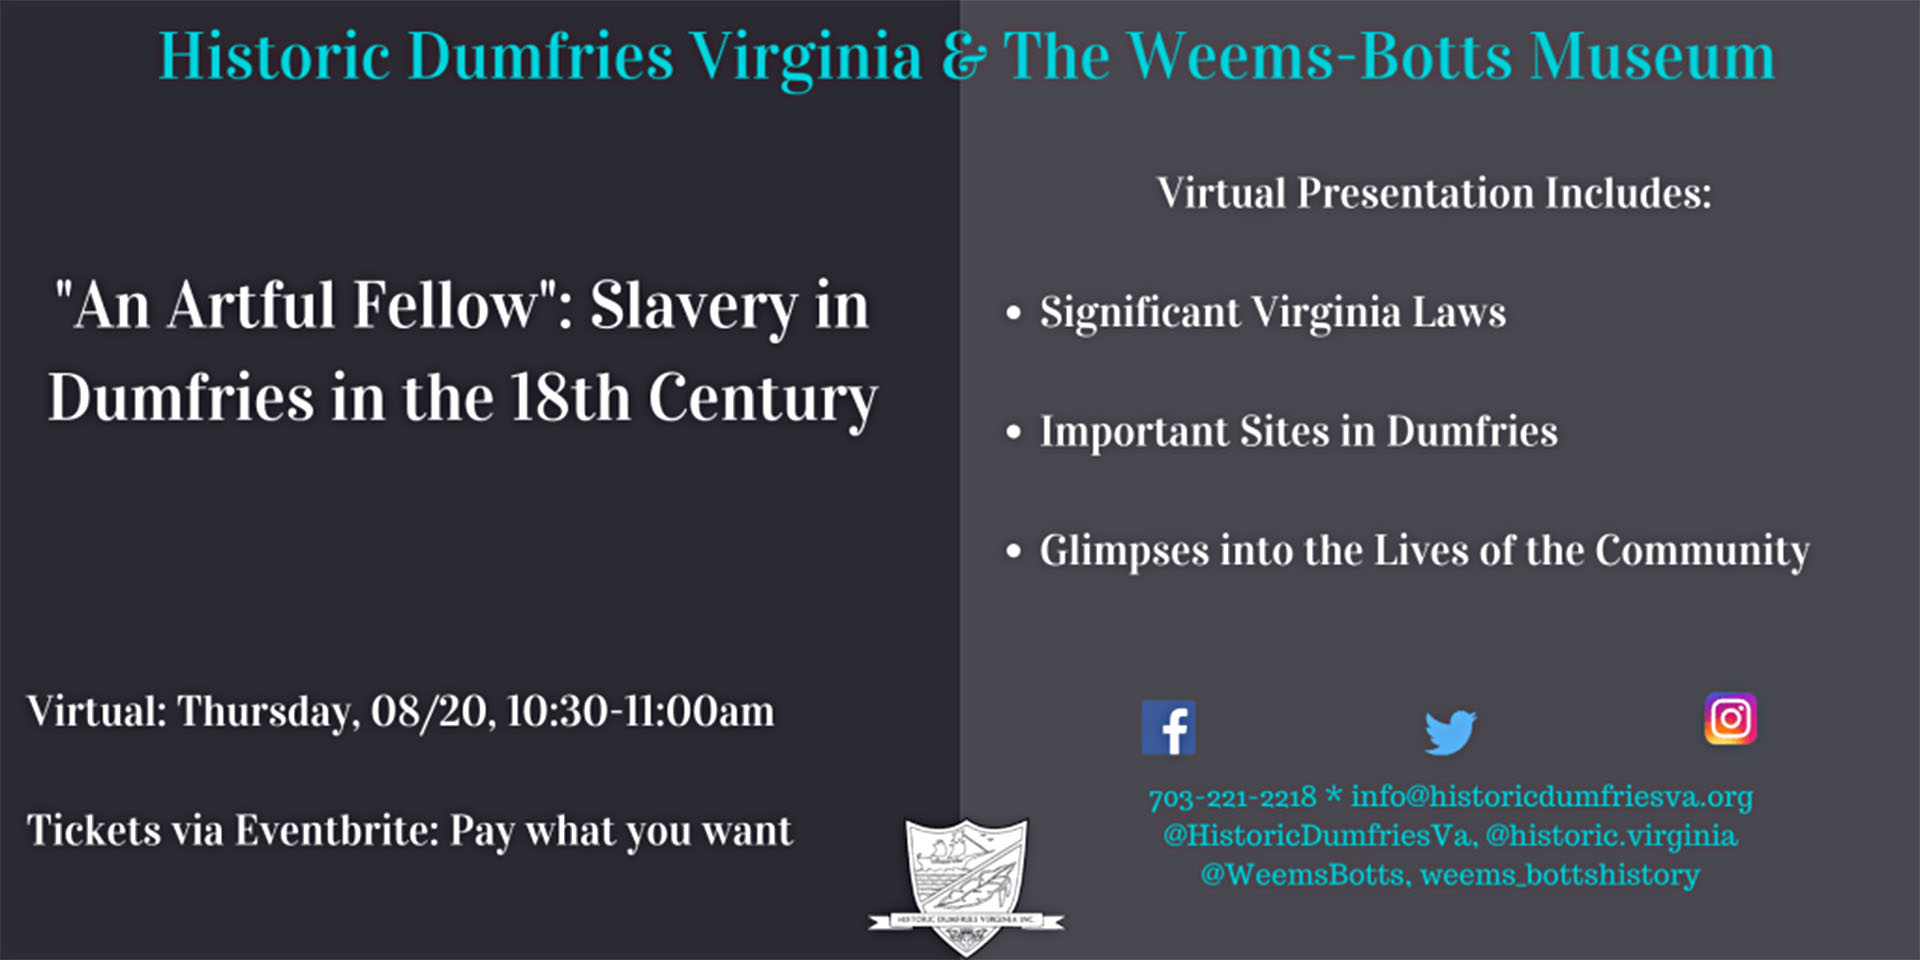 Slavery in 18th century to be focus of online presentation